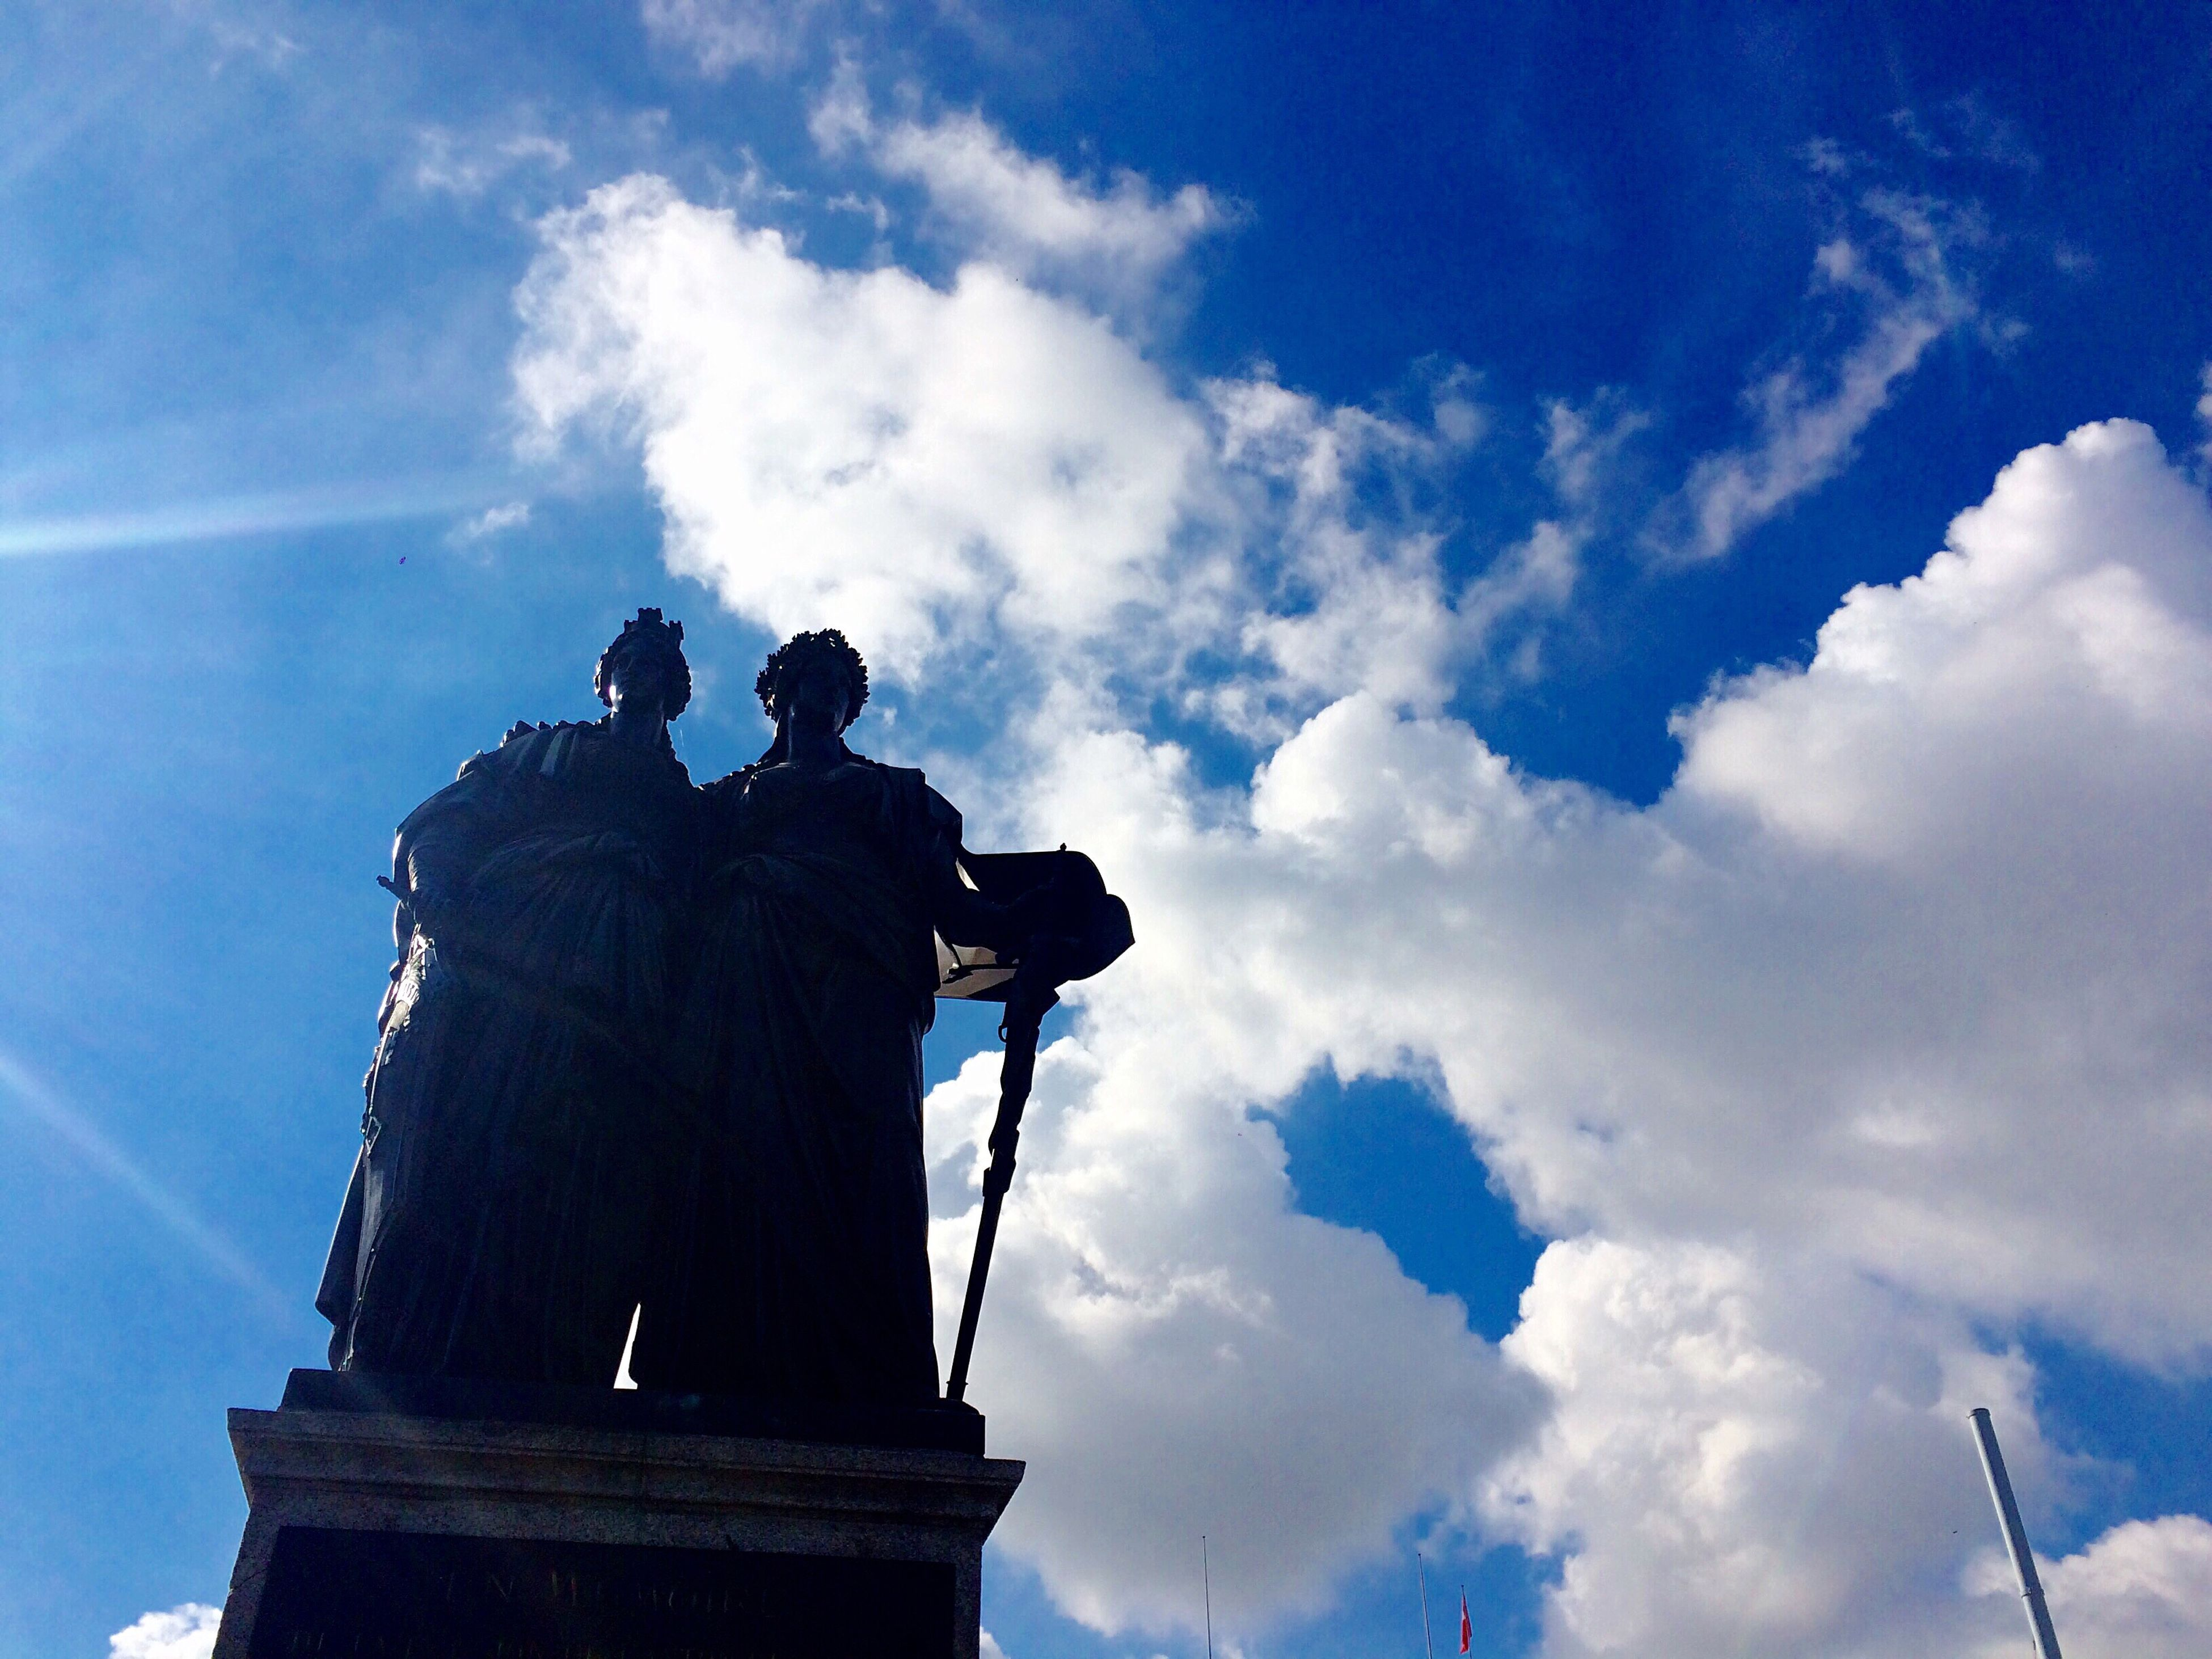 cloud - sky, low angle view, sky, two people, outdoors, only men, people, men, day, statue, adults only, adult, human body part